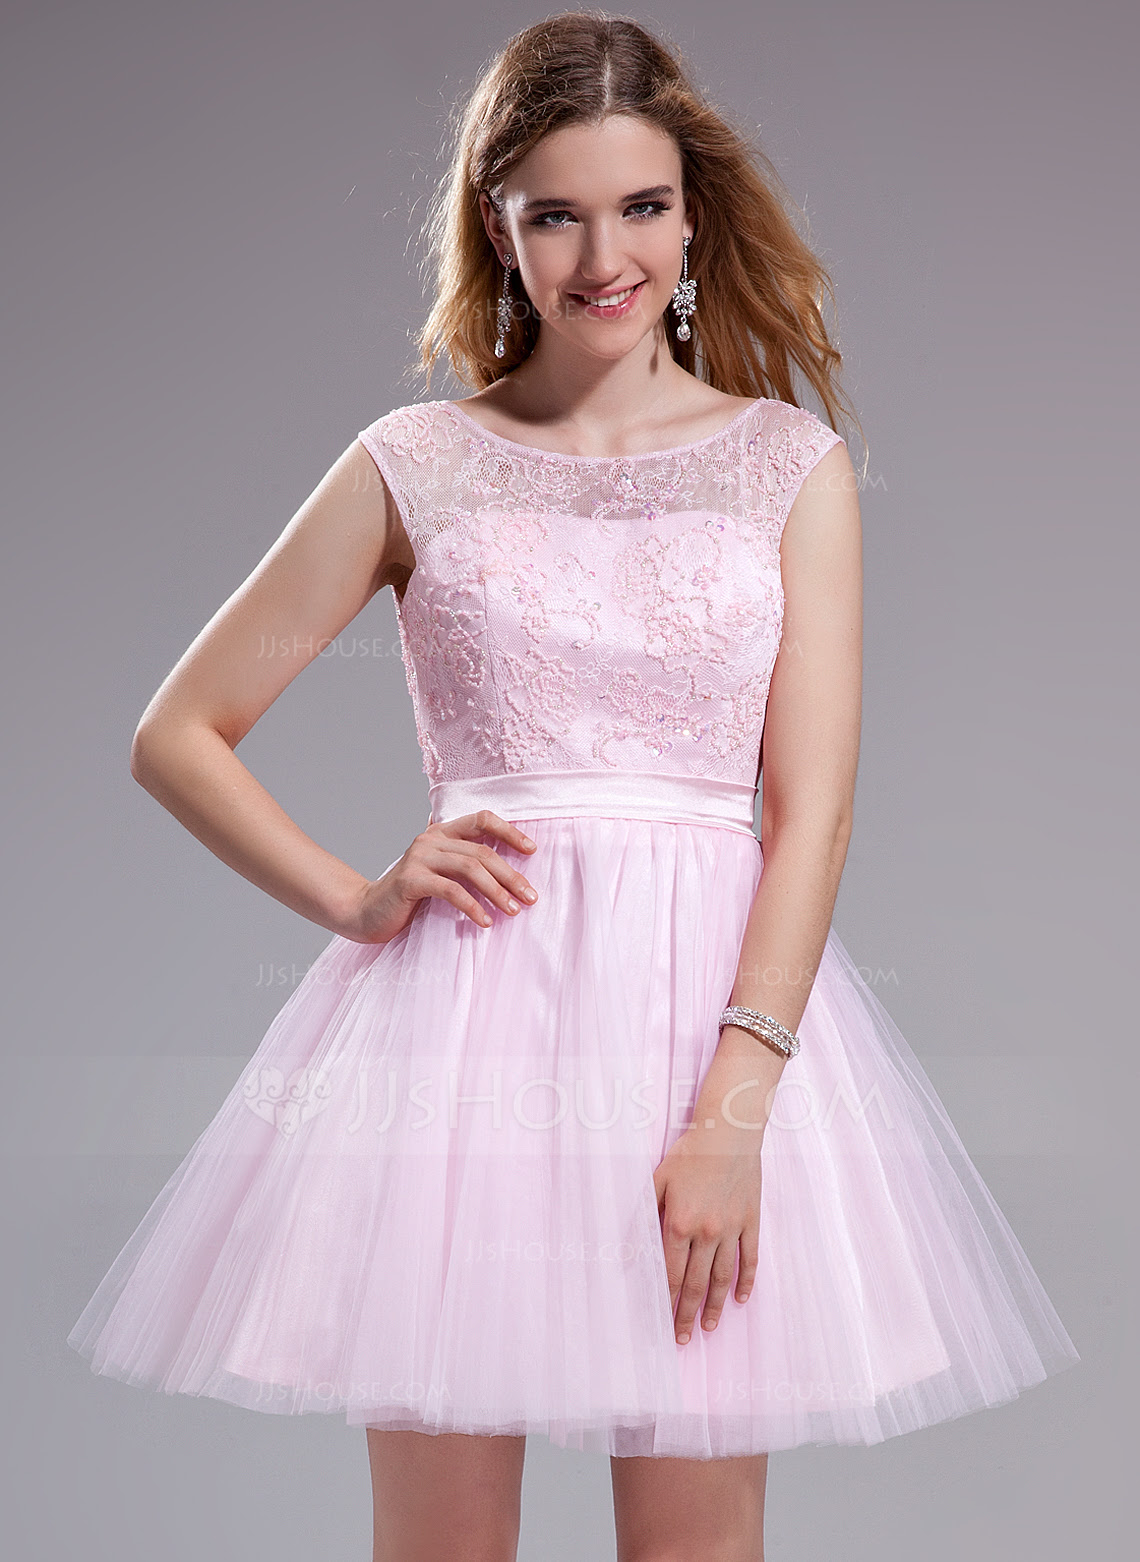 A-Line/Princess Scoop Neck Short/Mini Tulle Charmeuse Lace Prom Dress With Ruffle Beading Sequins Bow(s) (018025270) - JJsHouse